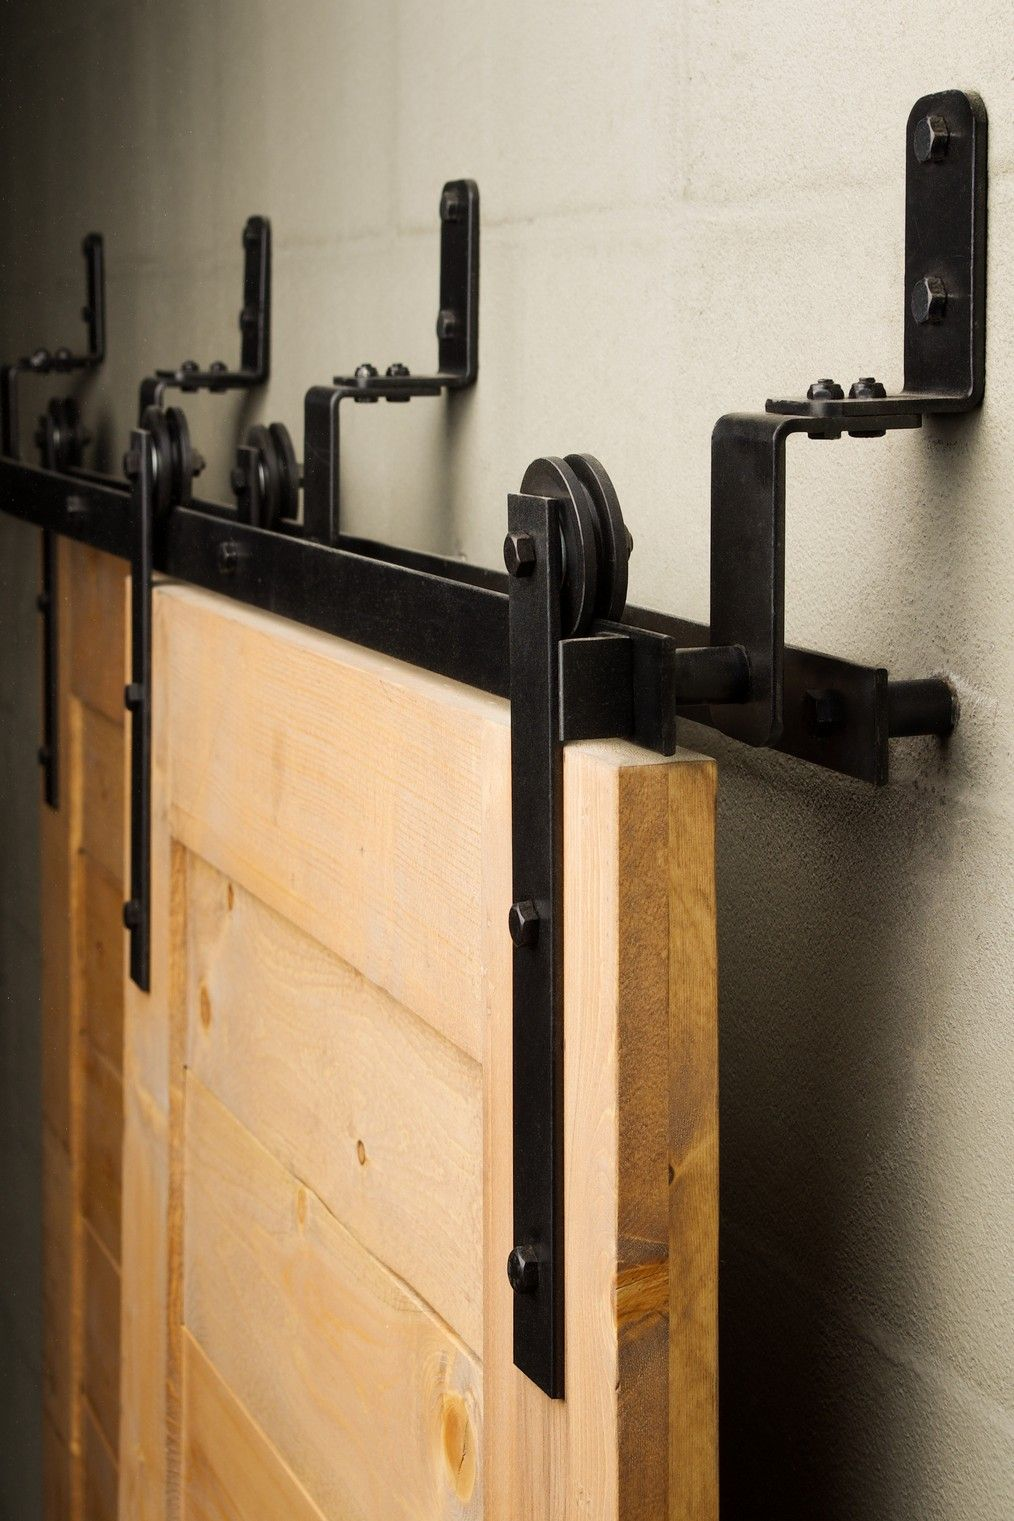 Decorating rolling door hardware photographs : The Bypass sliding barn door hardware is efficient in tight spaces ...